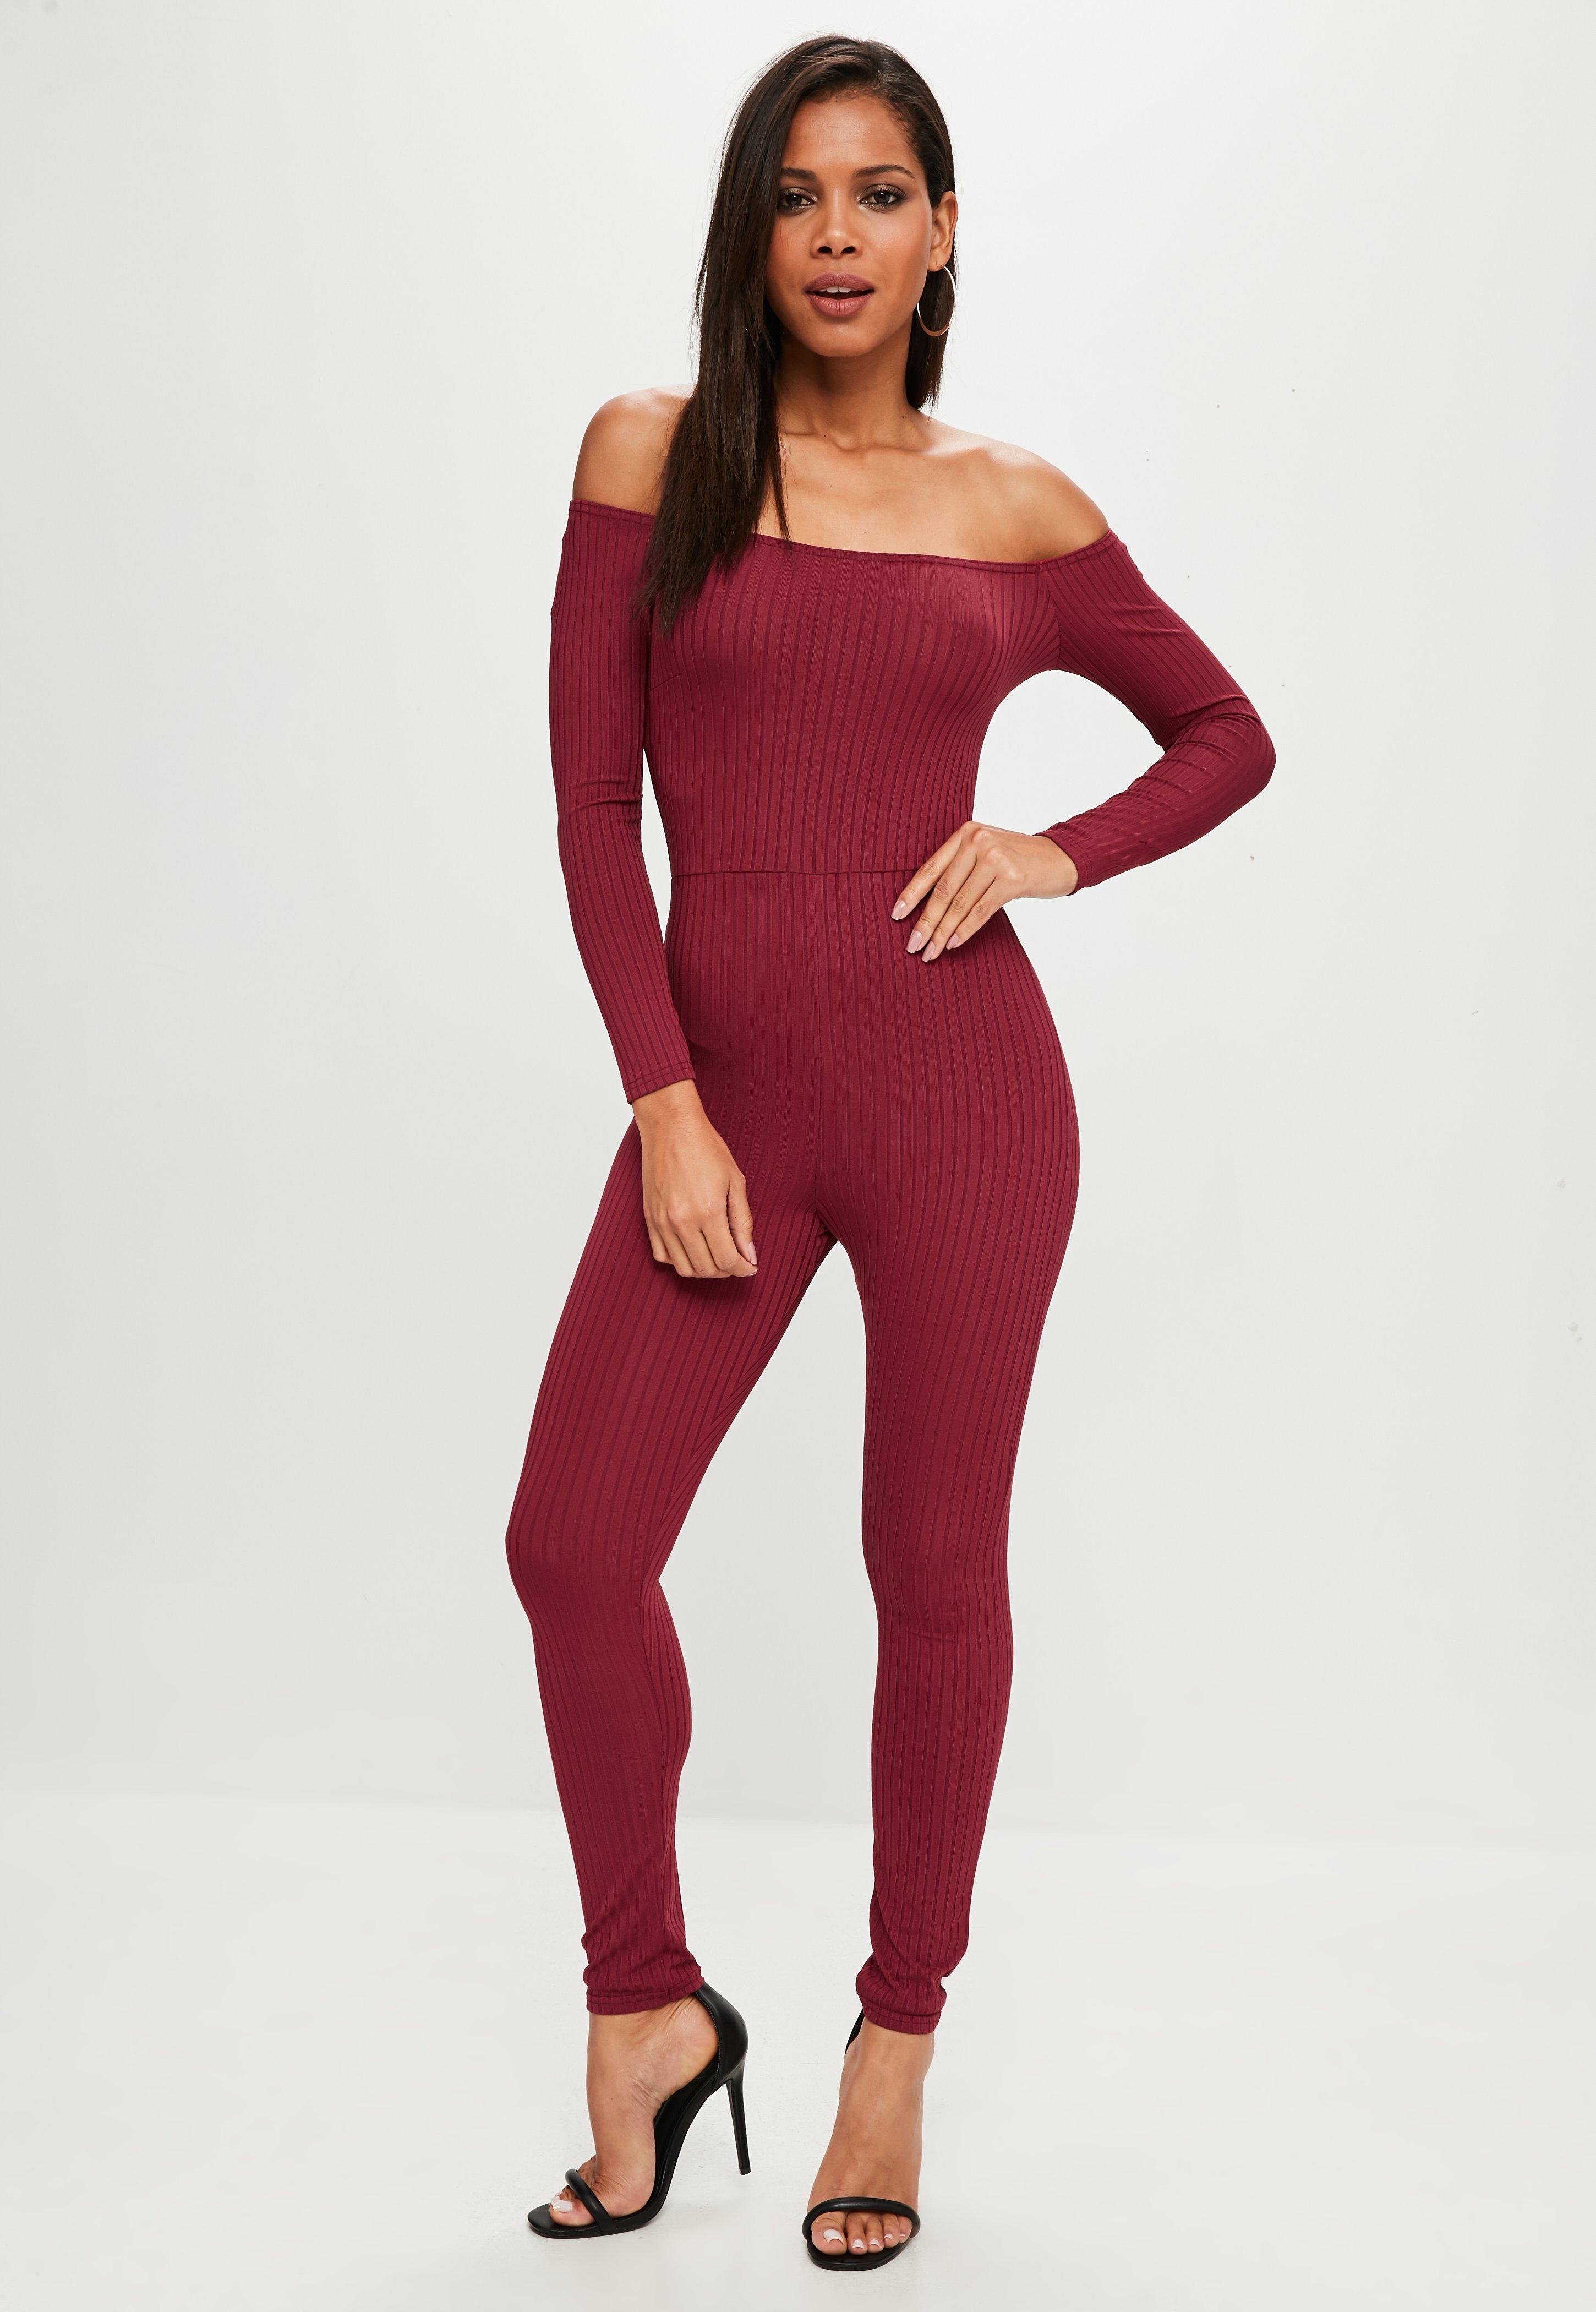 0c6aeaa3e58 Missguided Burgundy Ribbed Skinny Leg Jumpsuit in Red - Lyst